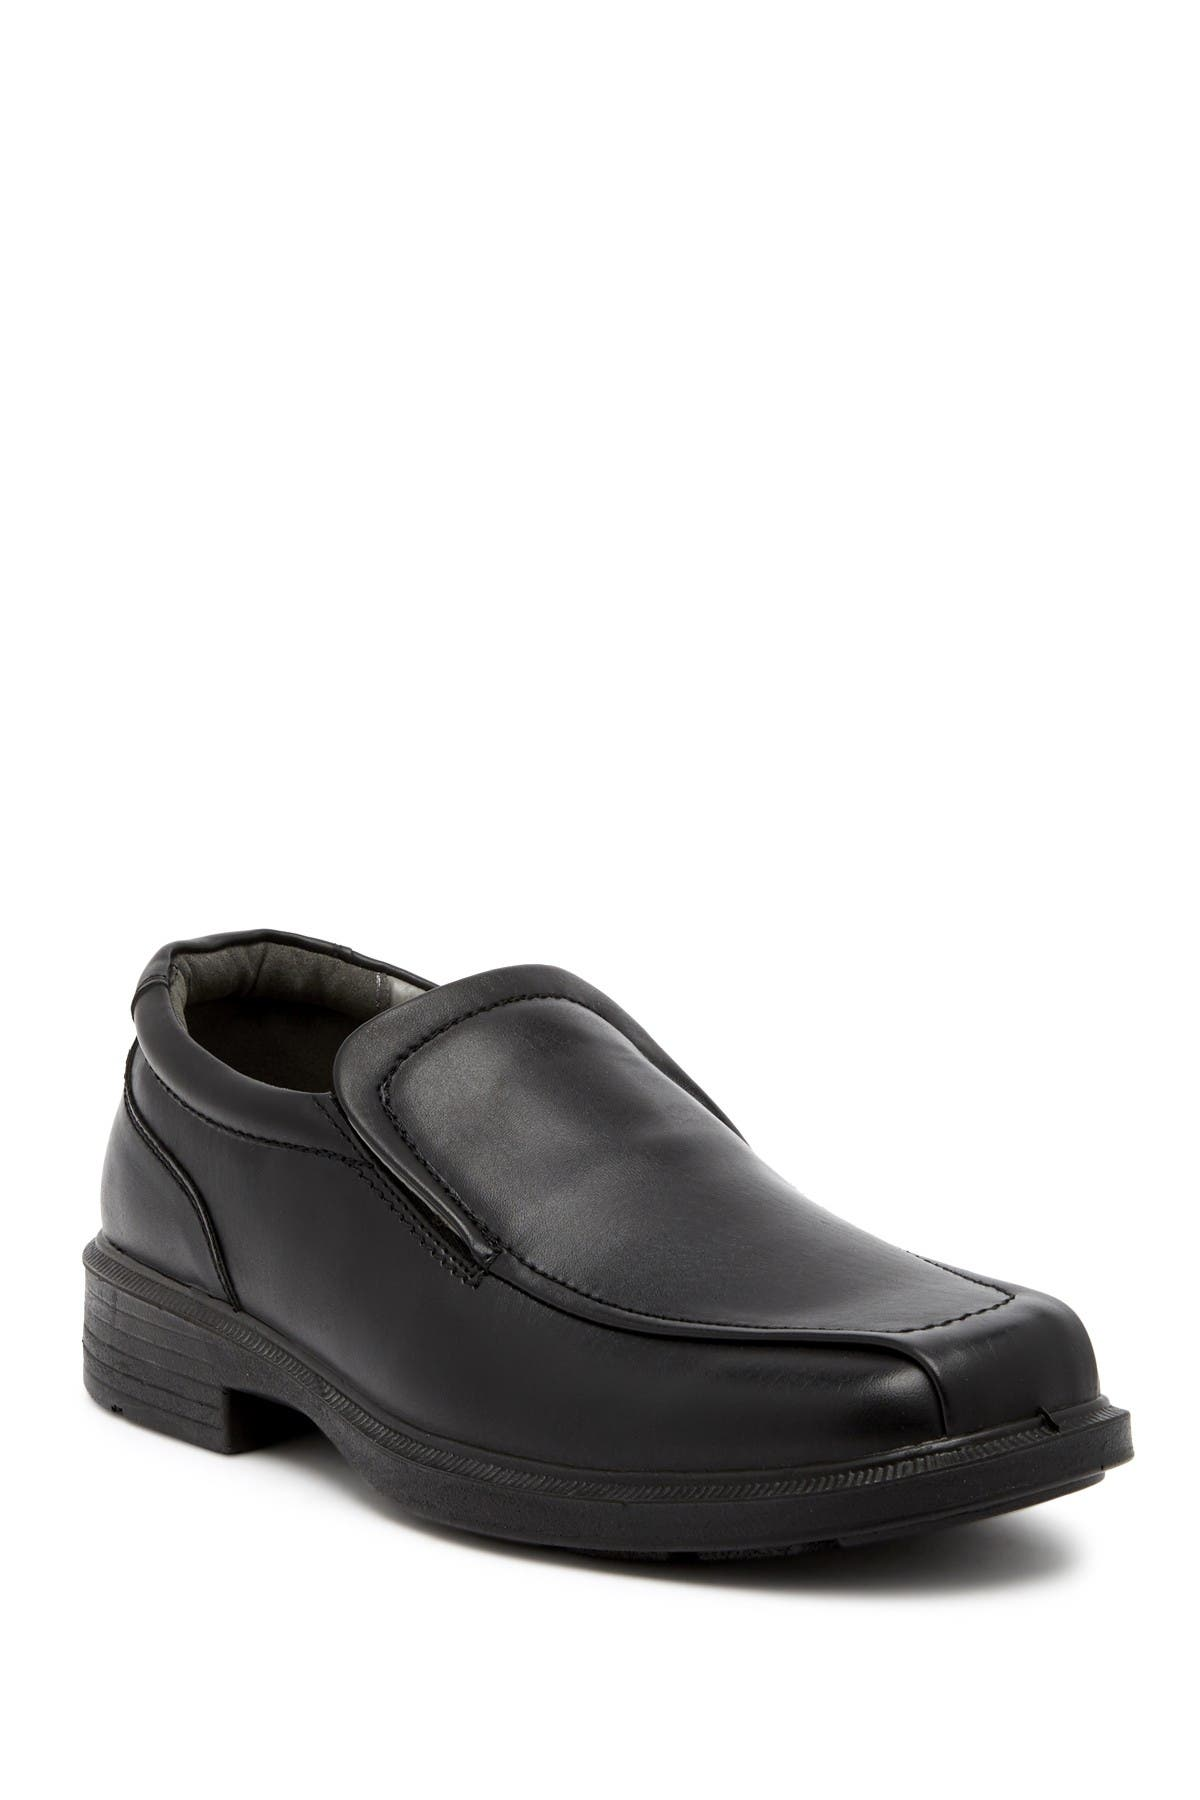 Image of Deer Stags Greenpoint Slip-On Loafer - Wide Width Available